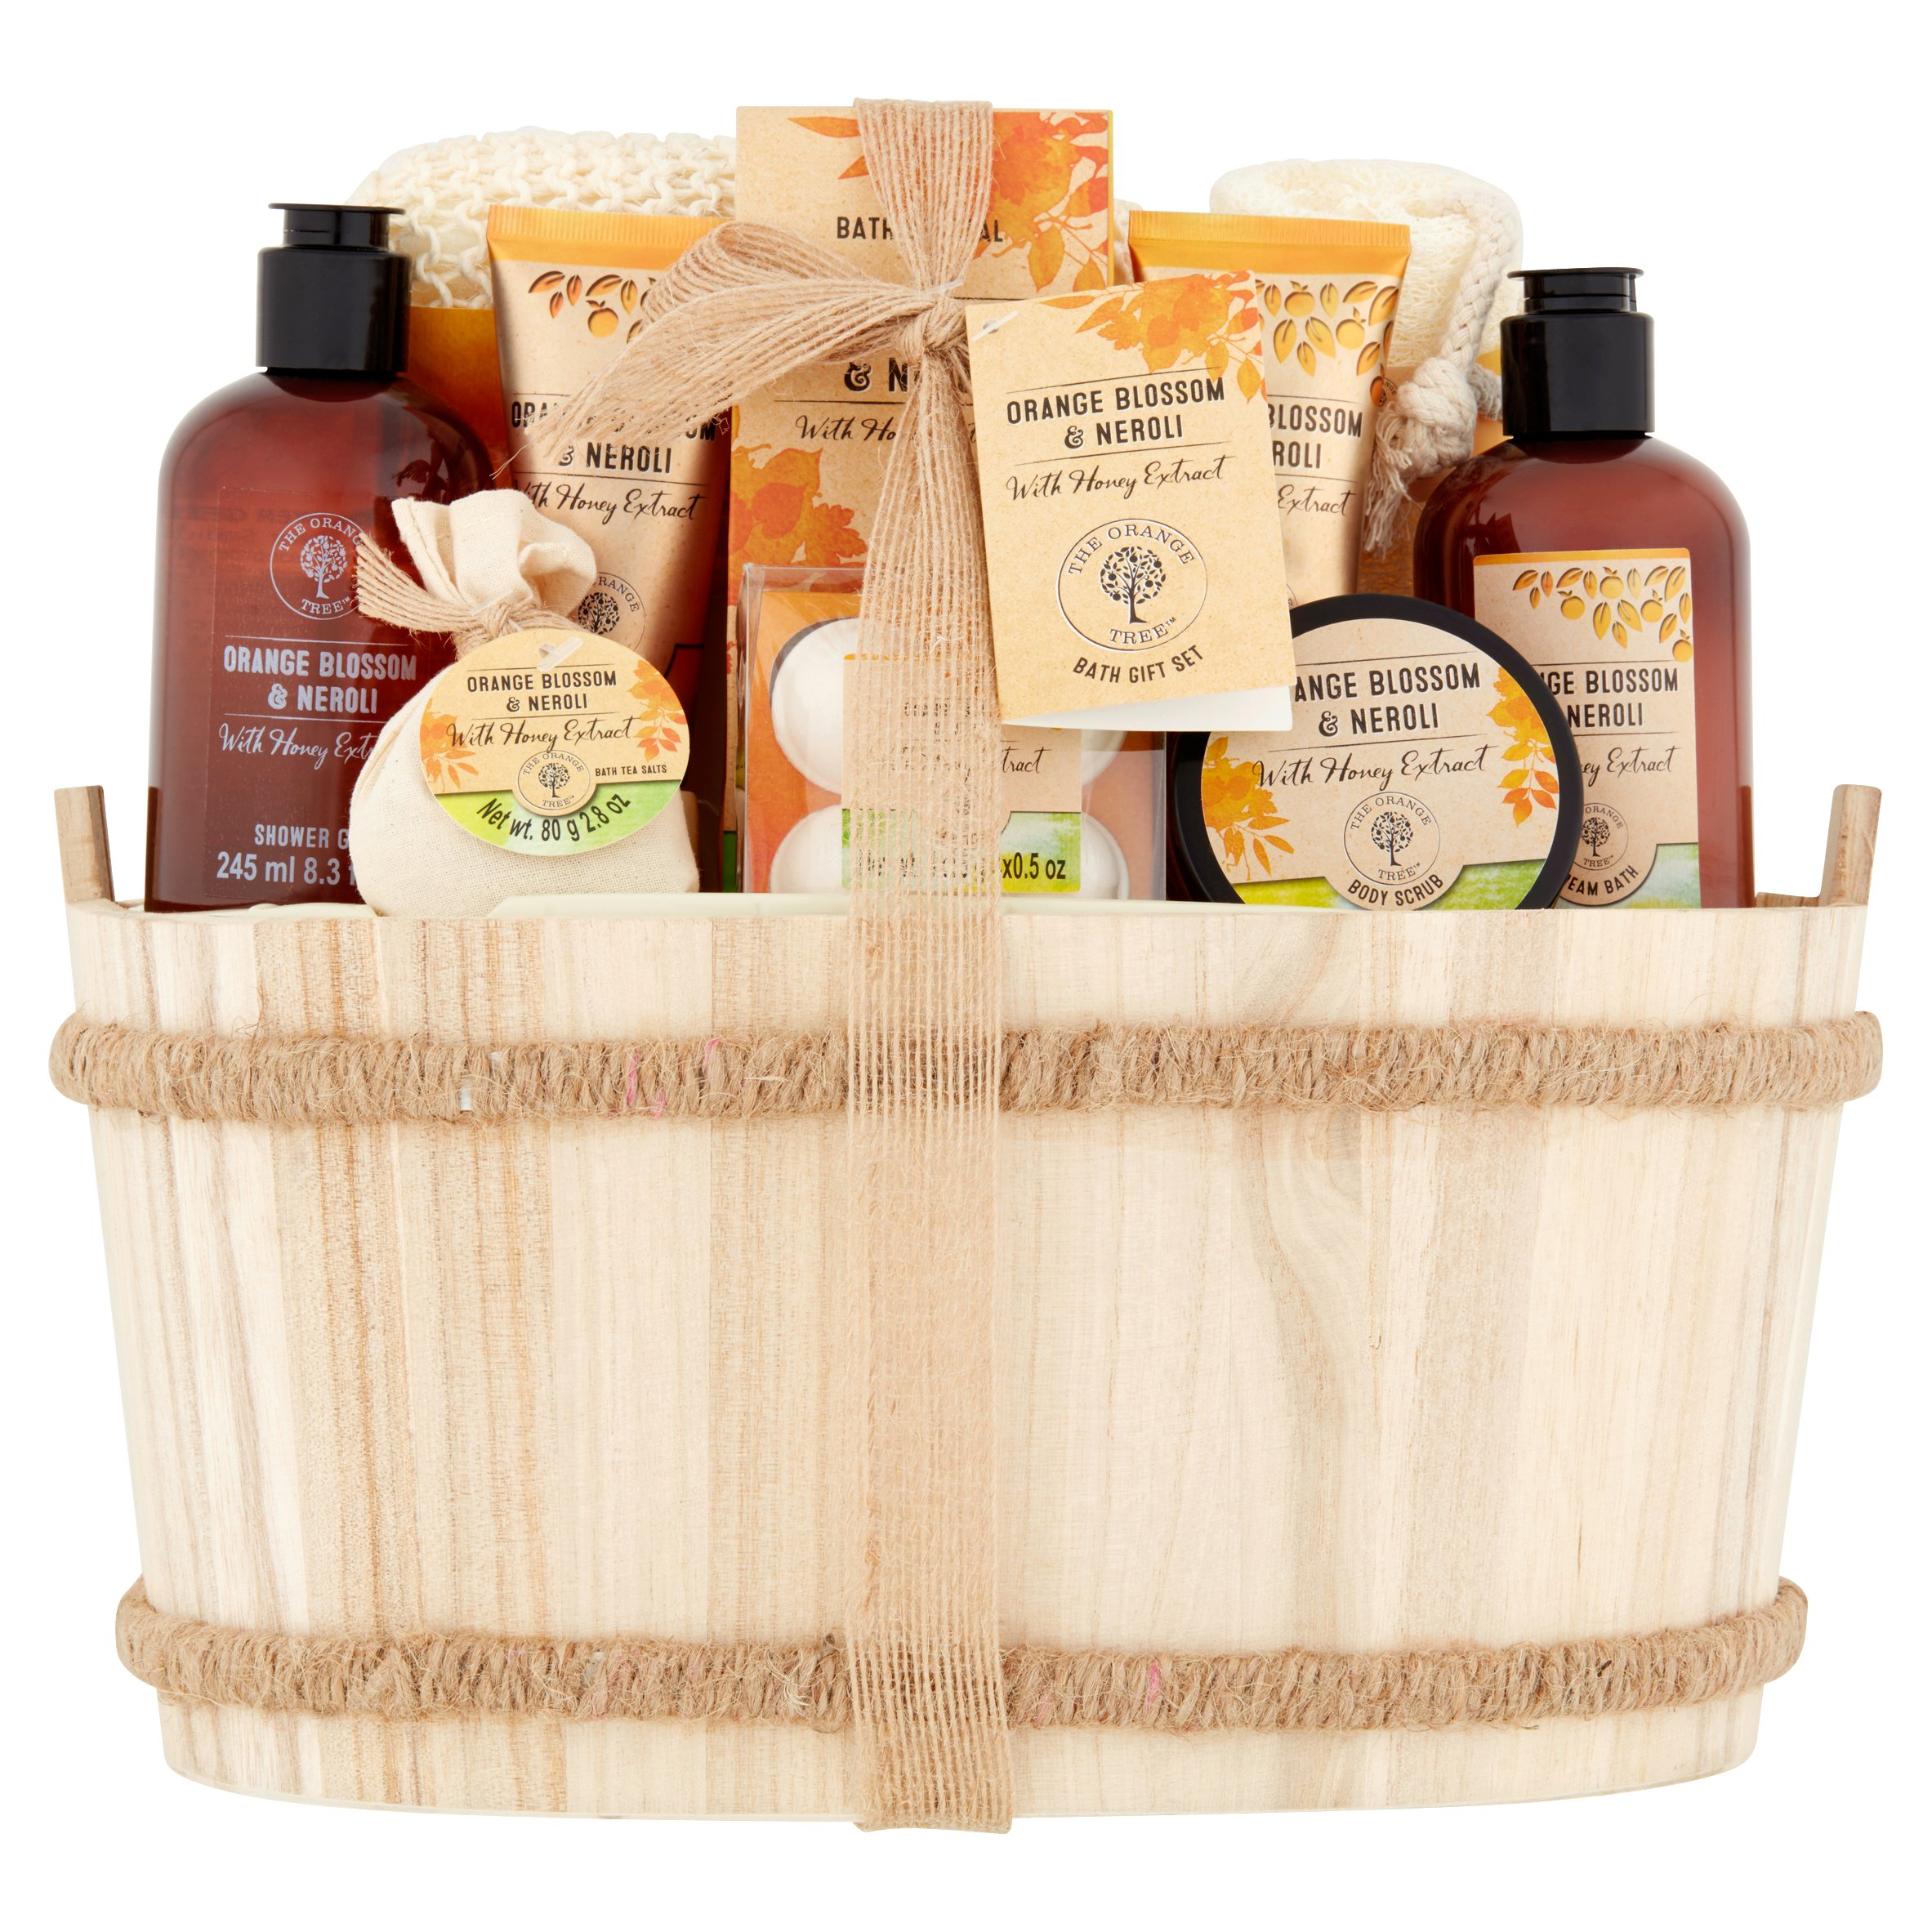 The Orange Tree Orange Blossom & Neroli Bath Gift Set in a Wooden Crate, 11pcs